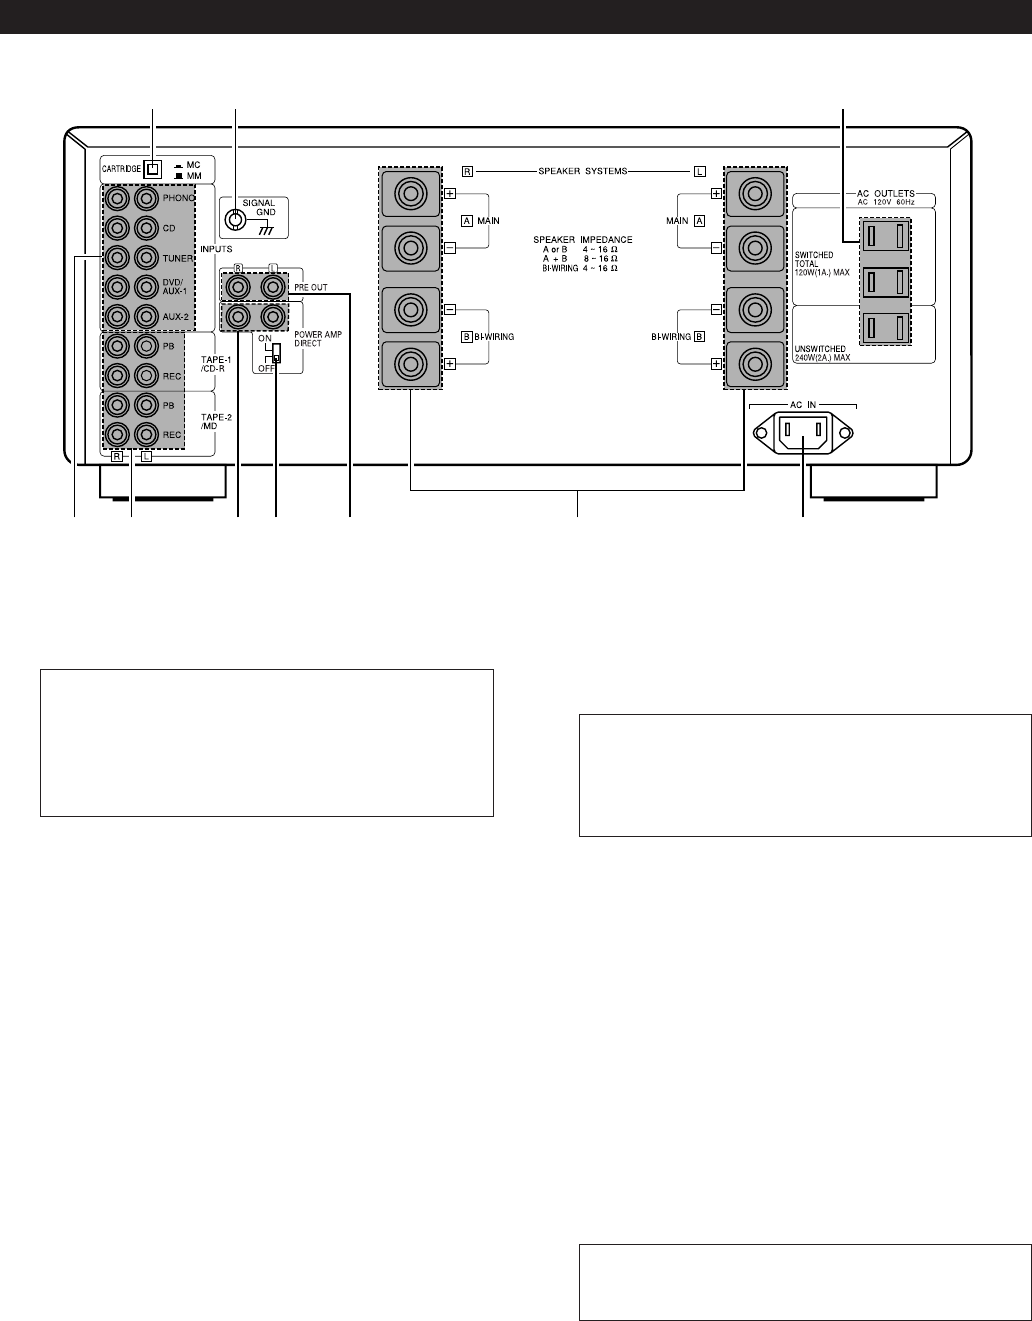 Page 6 of Denon Stereo Amplifier PMA-2000IVR User Guide